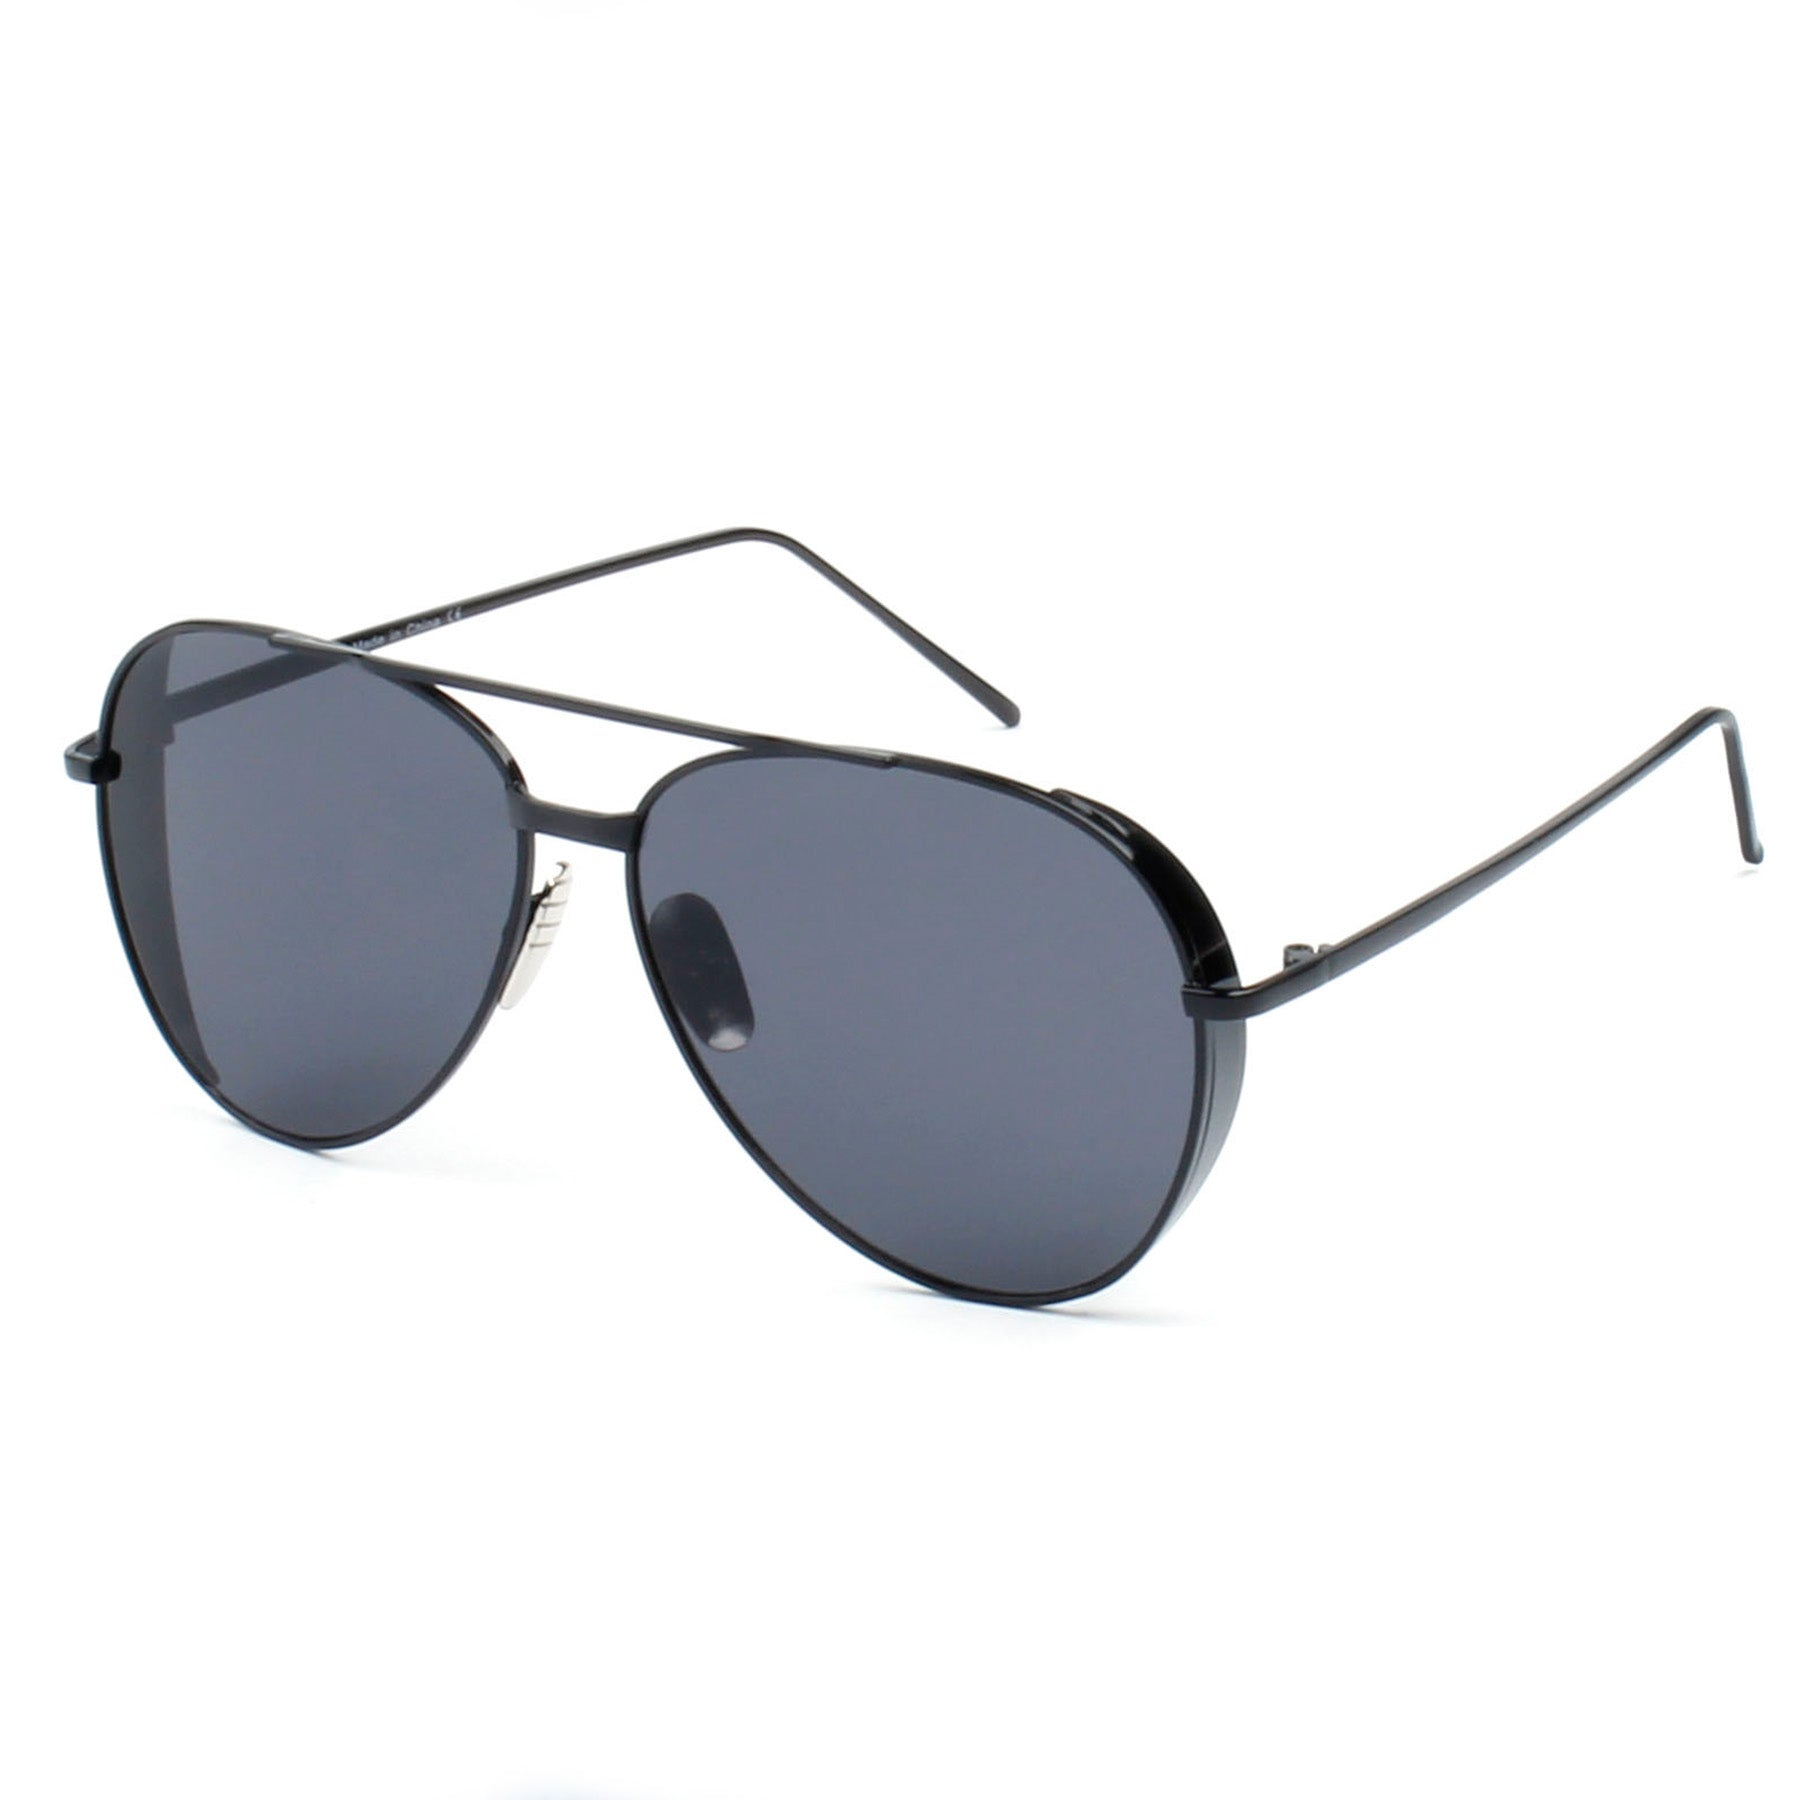 RECIFE SUNGLASS IN BLACK